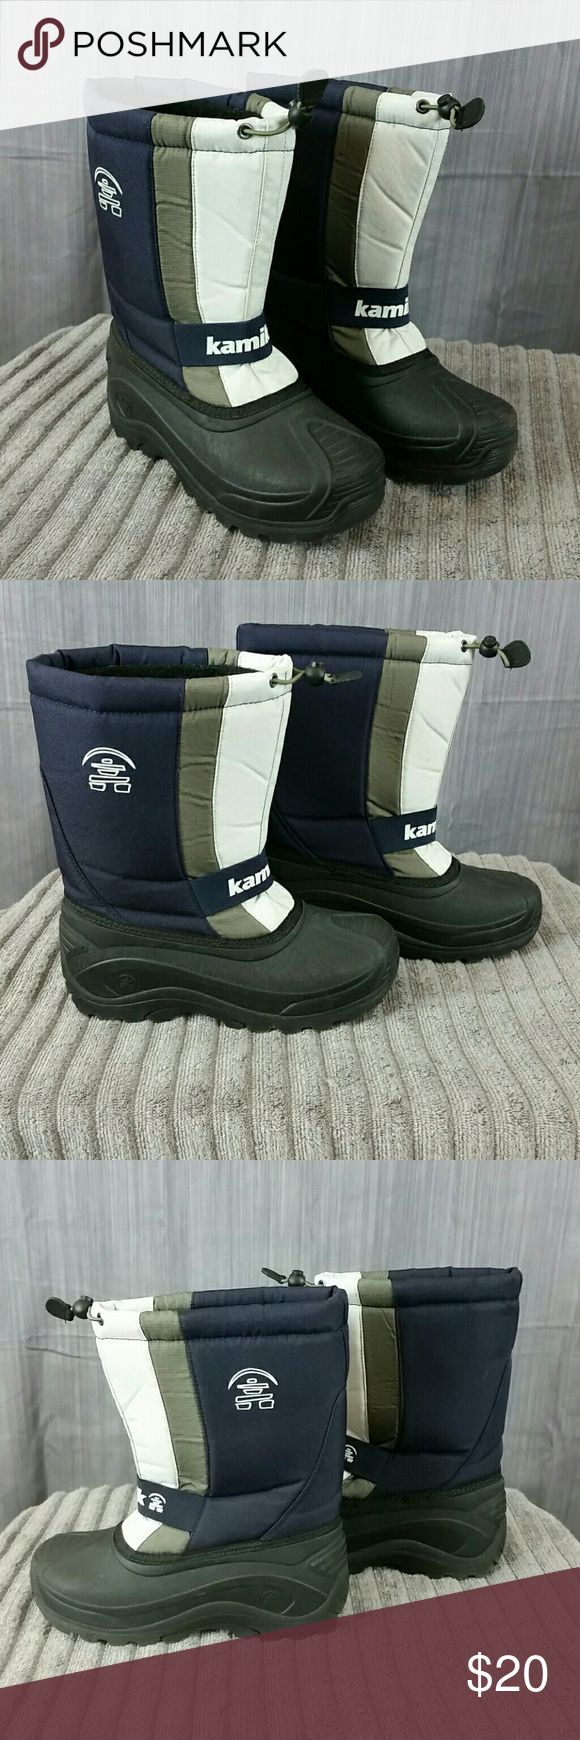 Kamik Insulated Pull-on Women's Snow Boots Sz 6 Very good pre-owned condition!   Each boot does have a tiny spot in the white area. Removable insulated liners.  Very little wear if worn at all!   Color:  Material: blue, gray and white.  Rubber:  black. Kamik Shoes Winter & Rain Boots